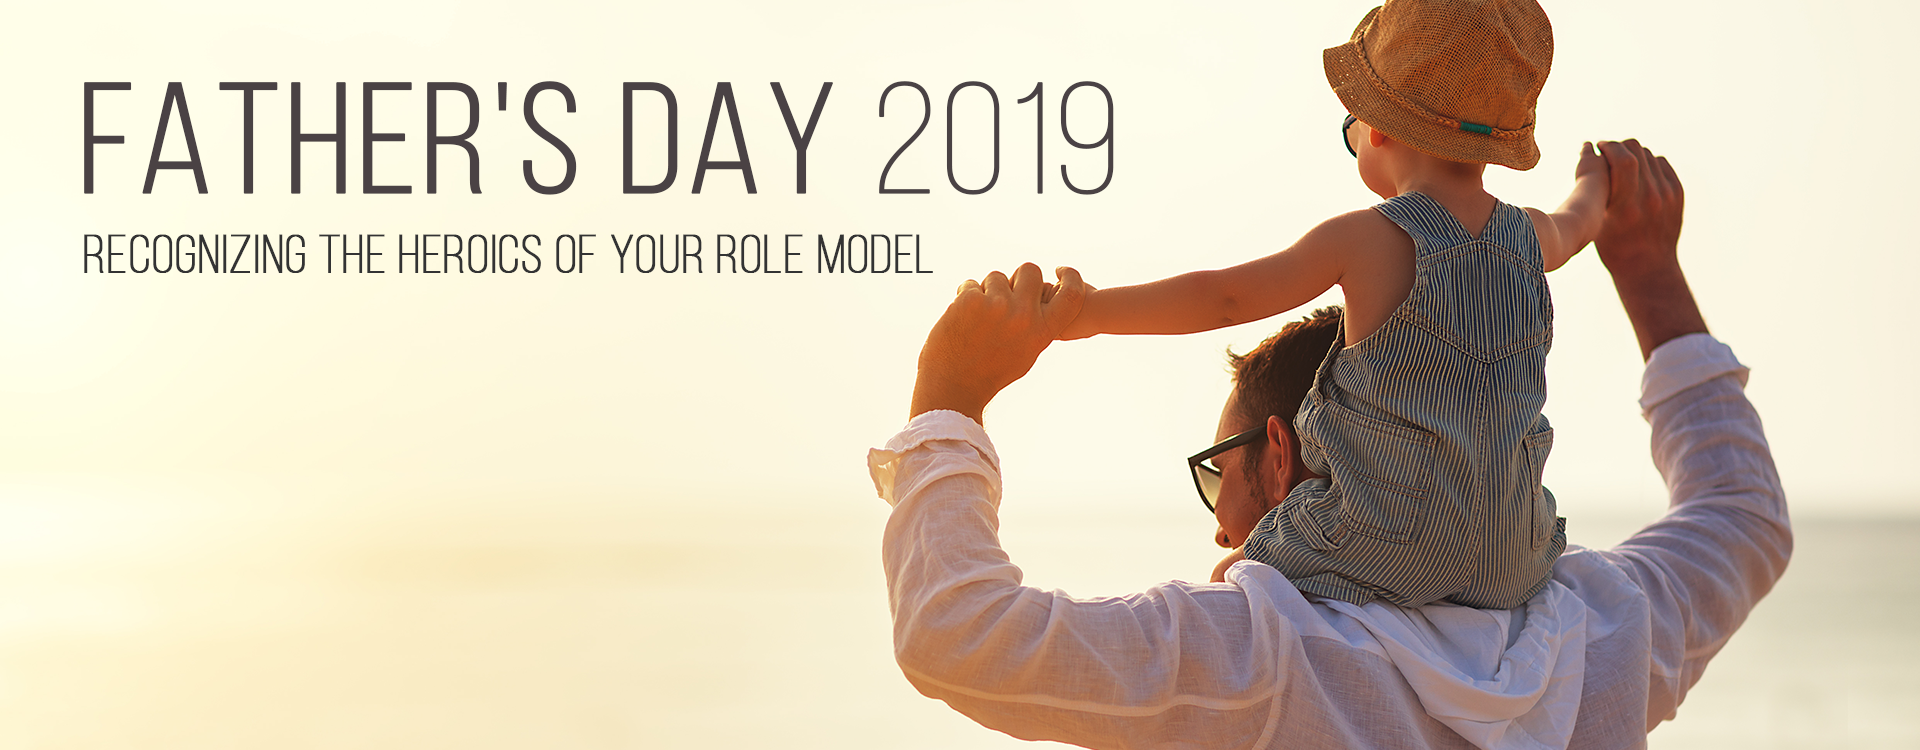 Father's Day 2019 - Flamboyance of The Fatherhood: